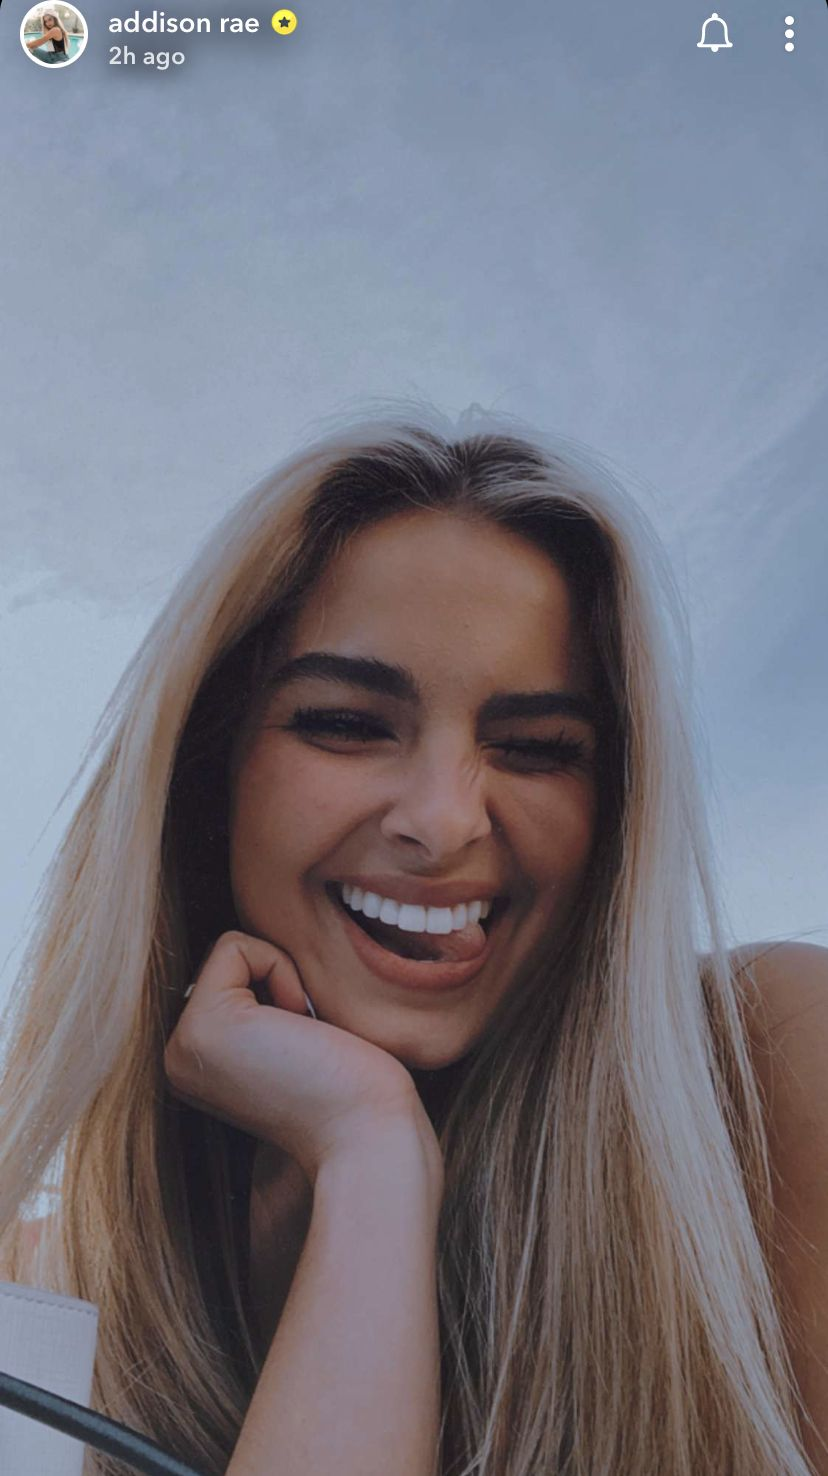 God Her Teeth Are So White Girl Celebrities The Most Beautiful Girl Native American Girls